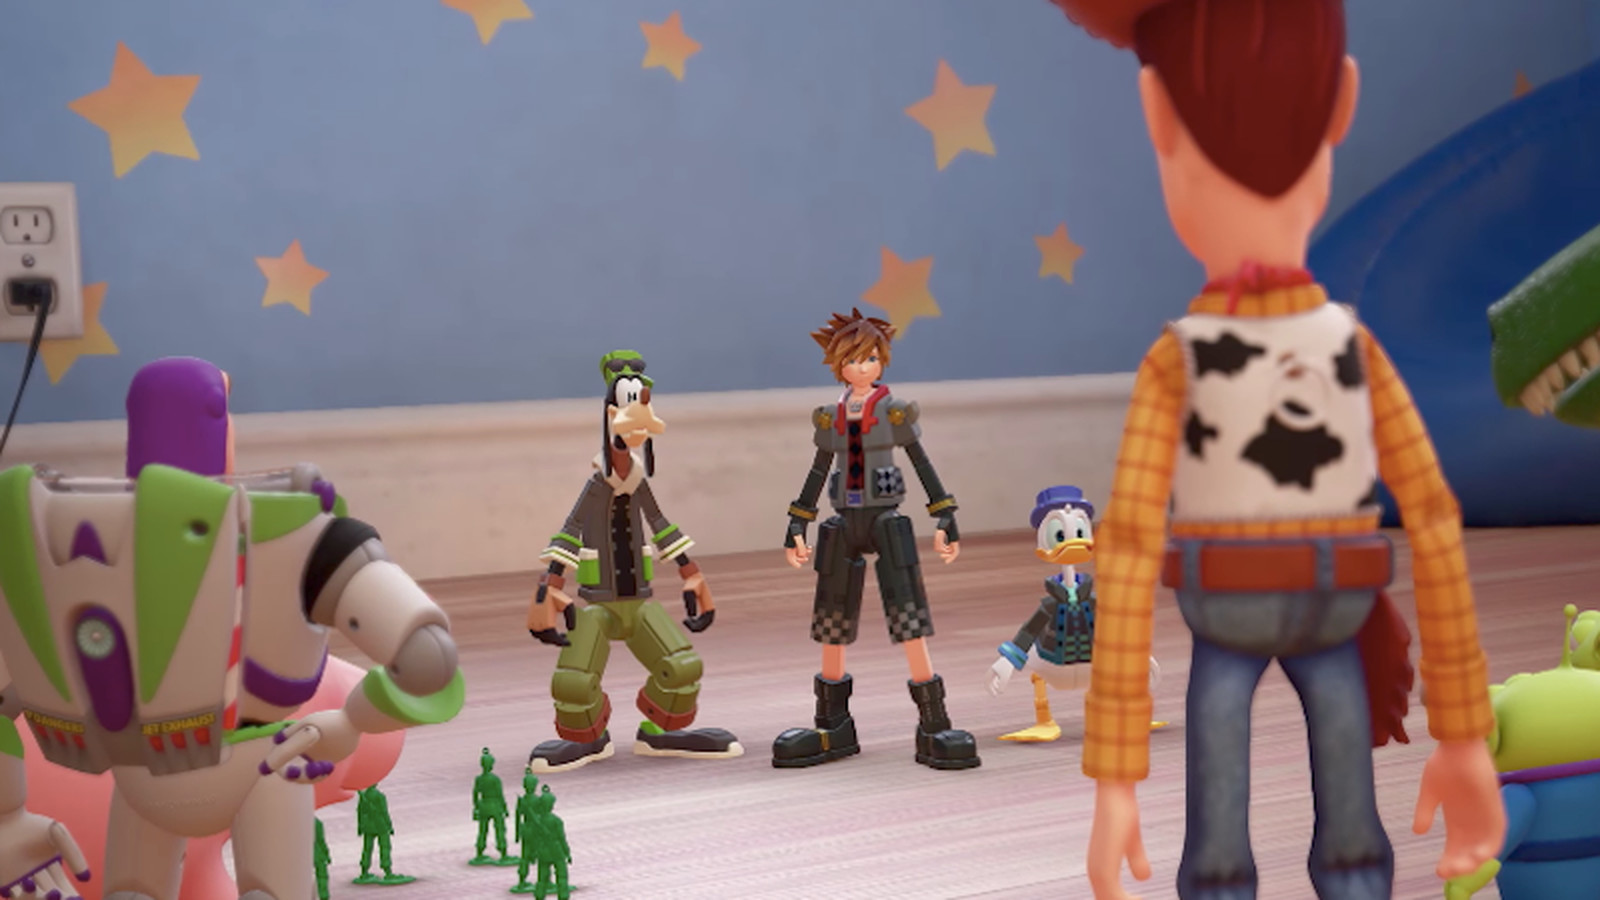 Kingdom Hearts 3 gives you a much bigger team to fight with